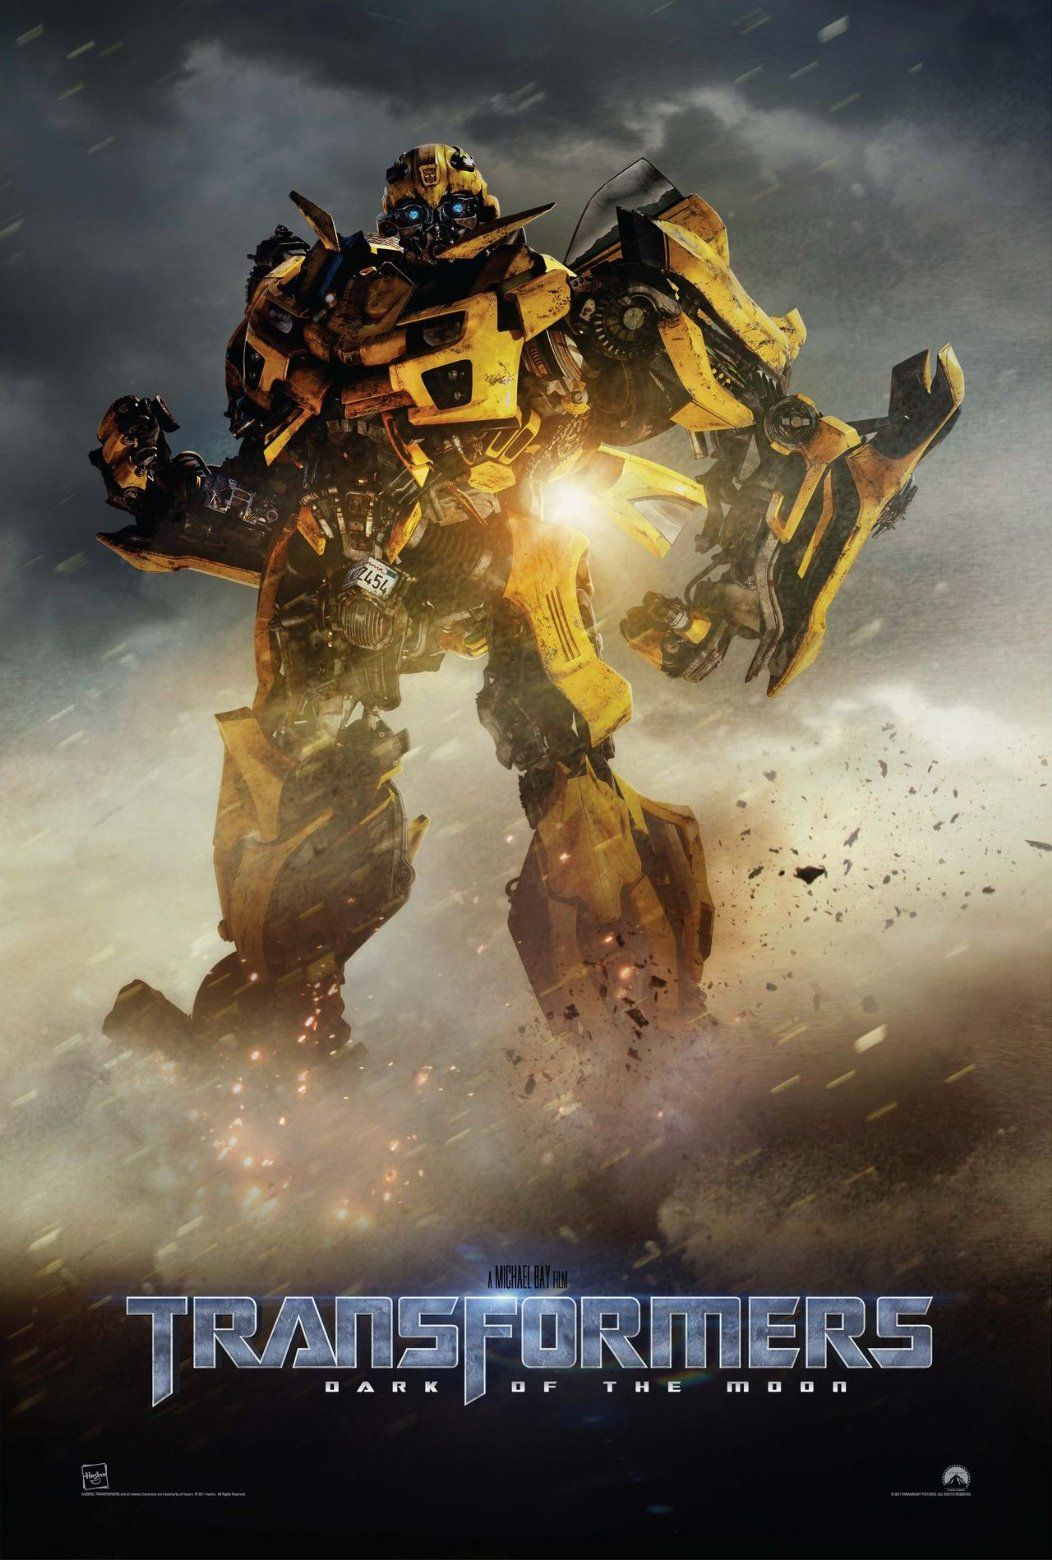 Pin By Stacy Rigney On Bob S Board Transformers Poster Transformers Transformers Bumblebee